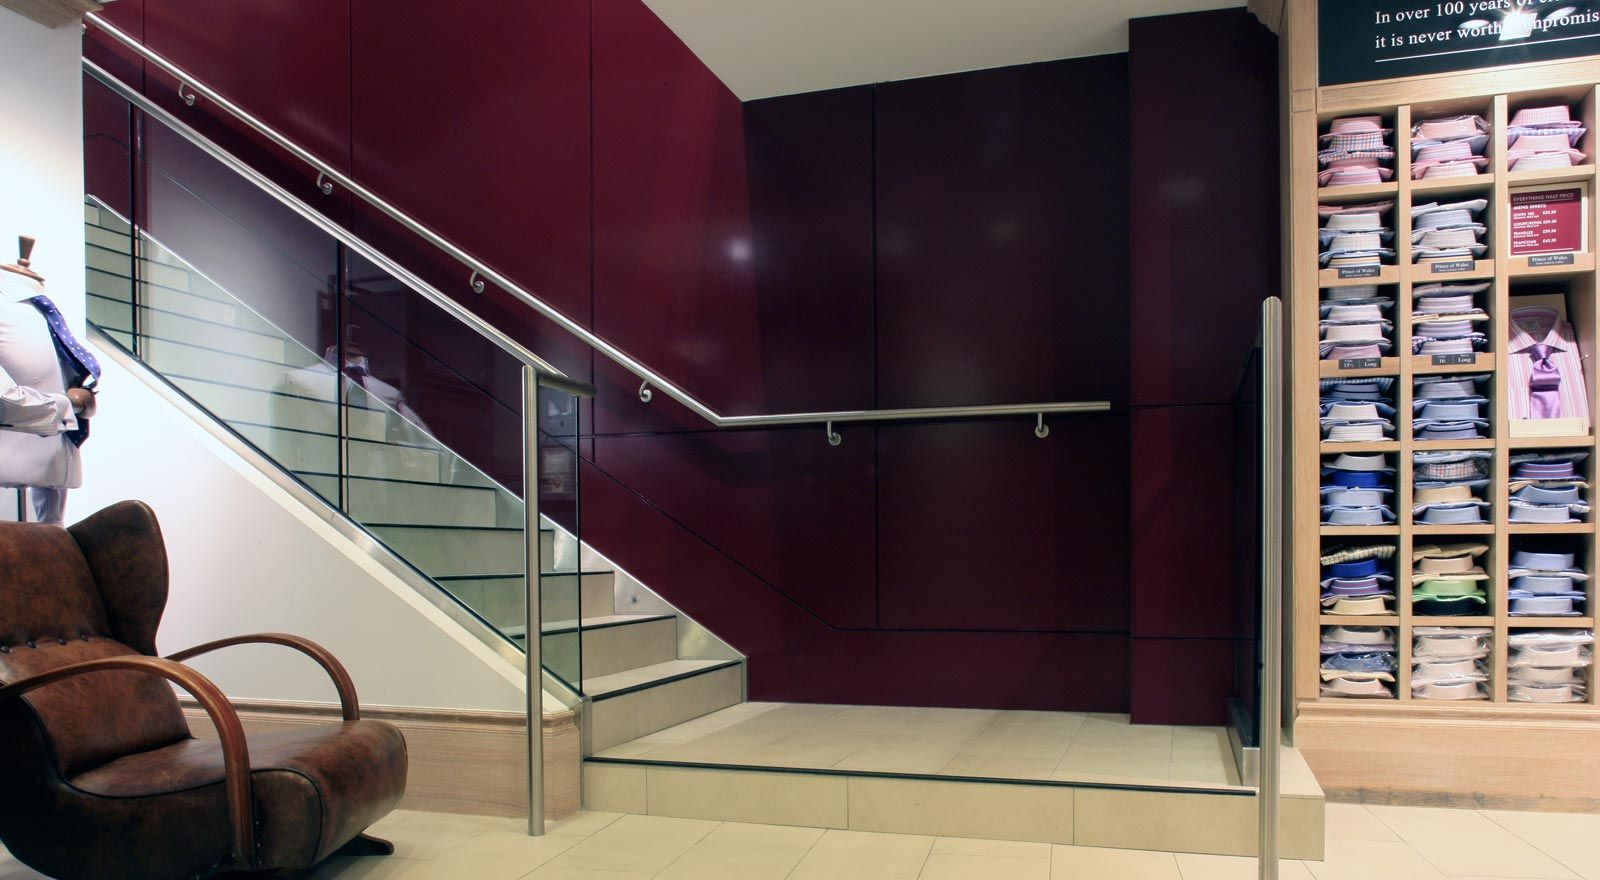 Stainless Steel Handrail And Mild Steel Structure Retail